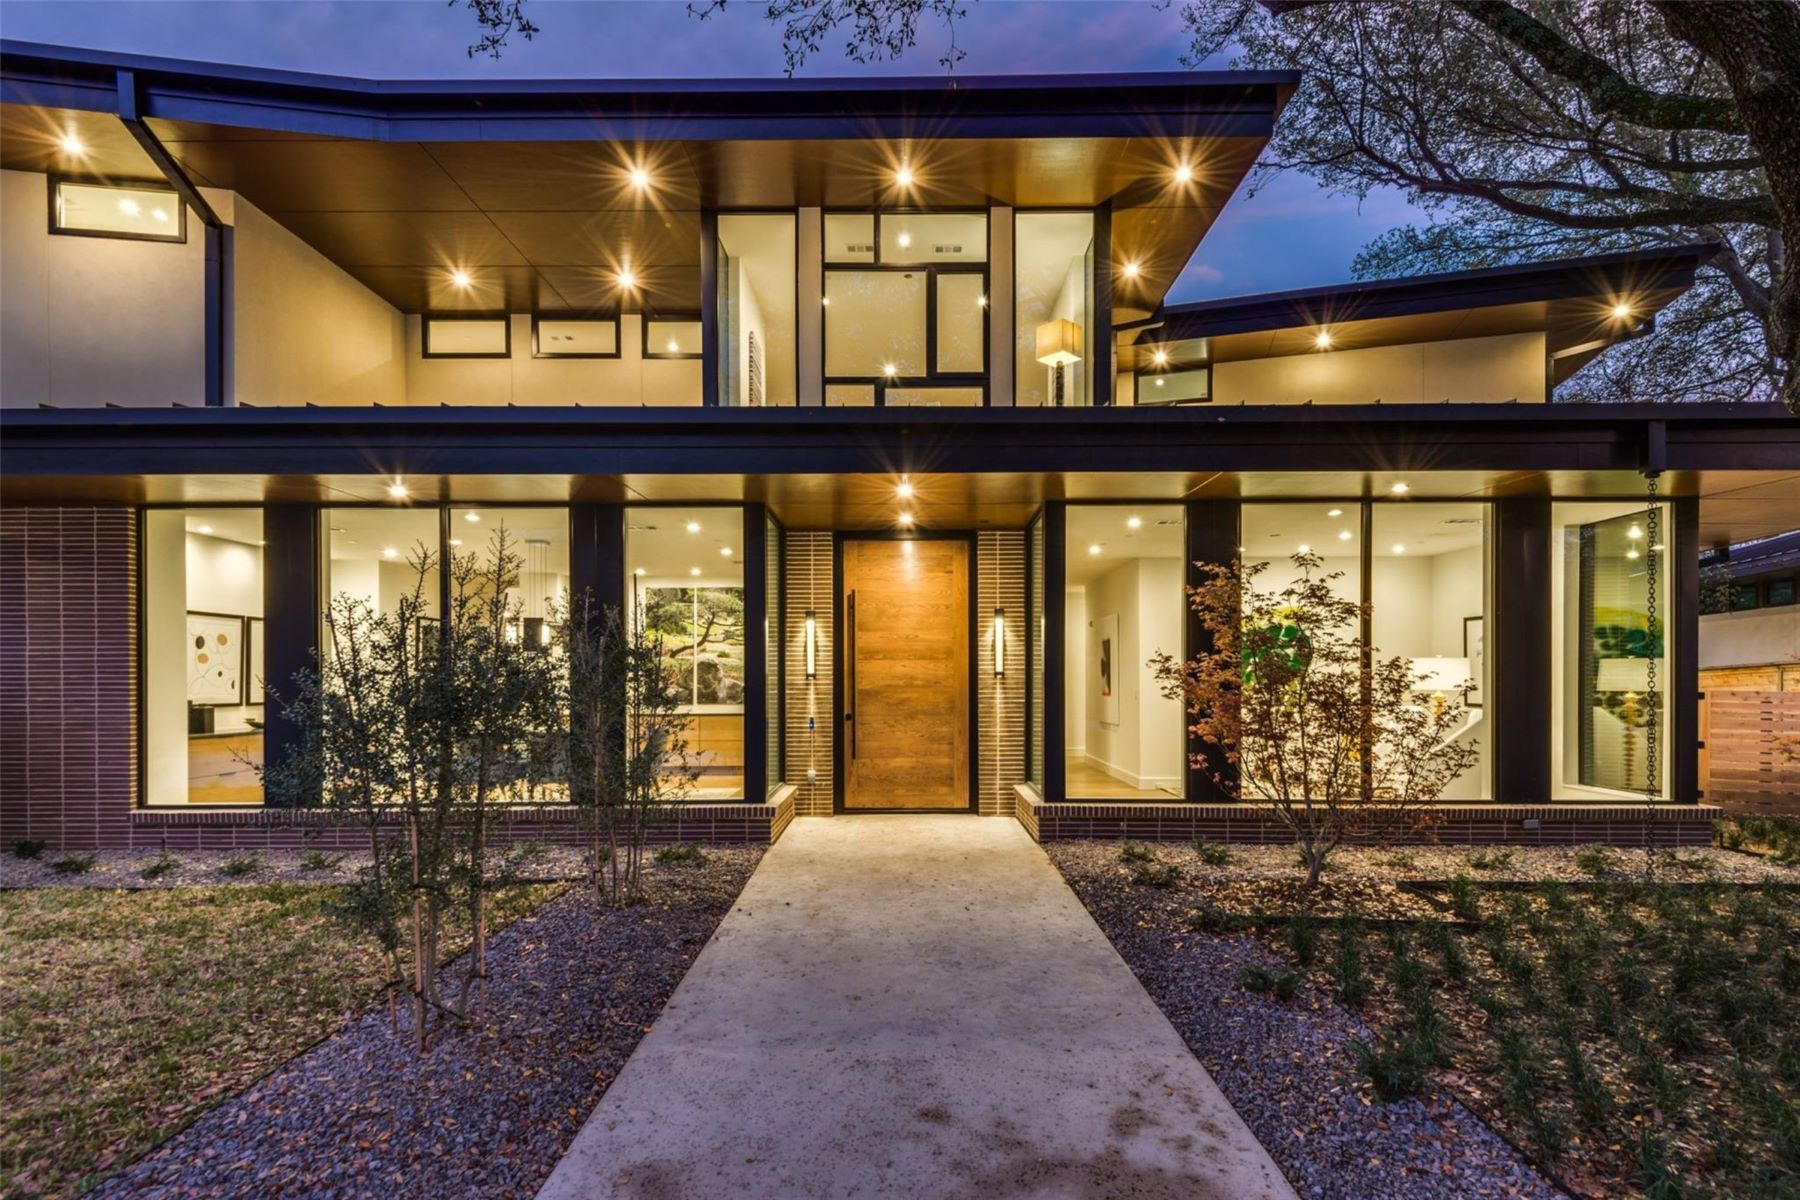 Single Family Homes for Sale at Thoughtfully Designed Entertaining Home 11468 Strait Lane Dallas, Texas 75229 United States